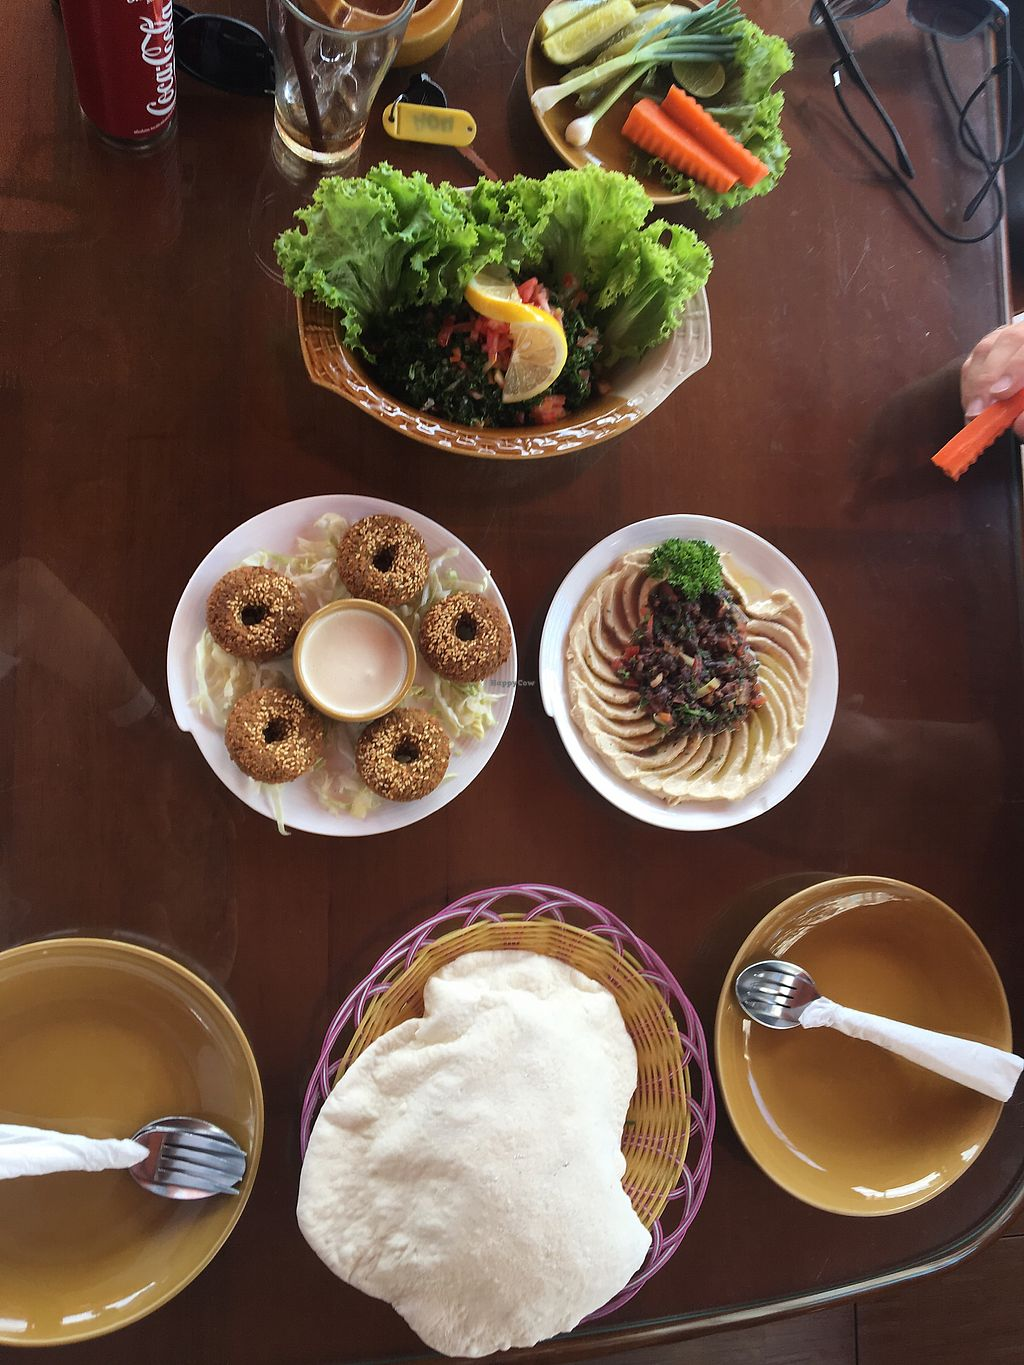 """Photo of Lebanese Restaurant  by <a href=""""/members/profile/Danikite212"""">Danikite212</a> <br/>Falafel and Lebanese salad <br/> February 20, 2018  - <a href='/contact/abuse/image/33929/361617'>Report</a>"""